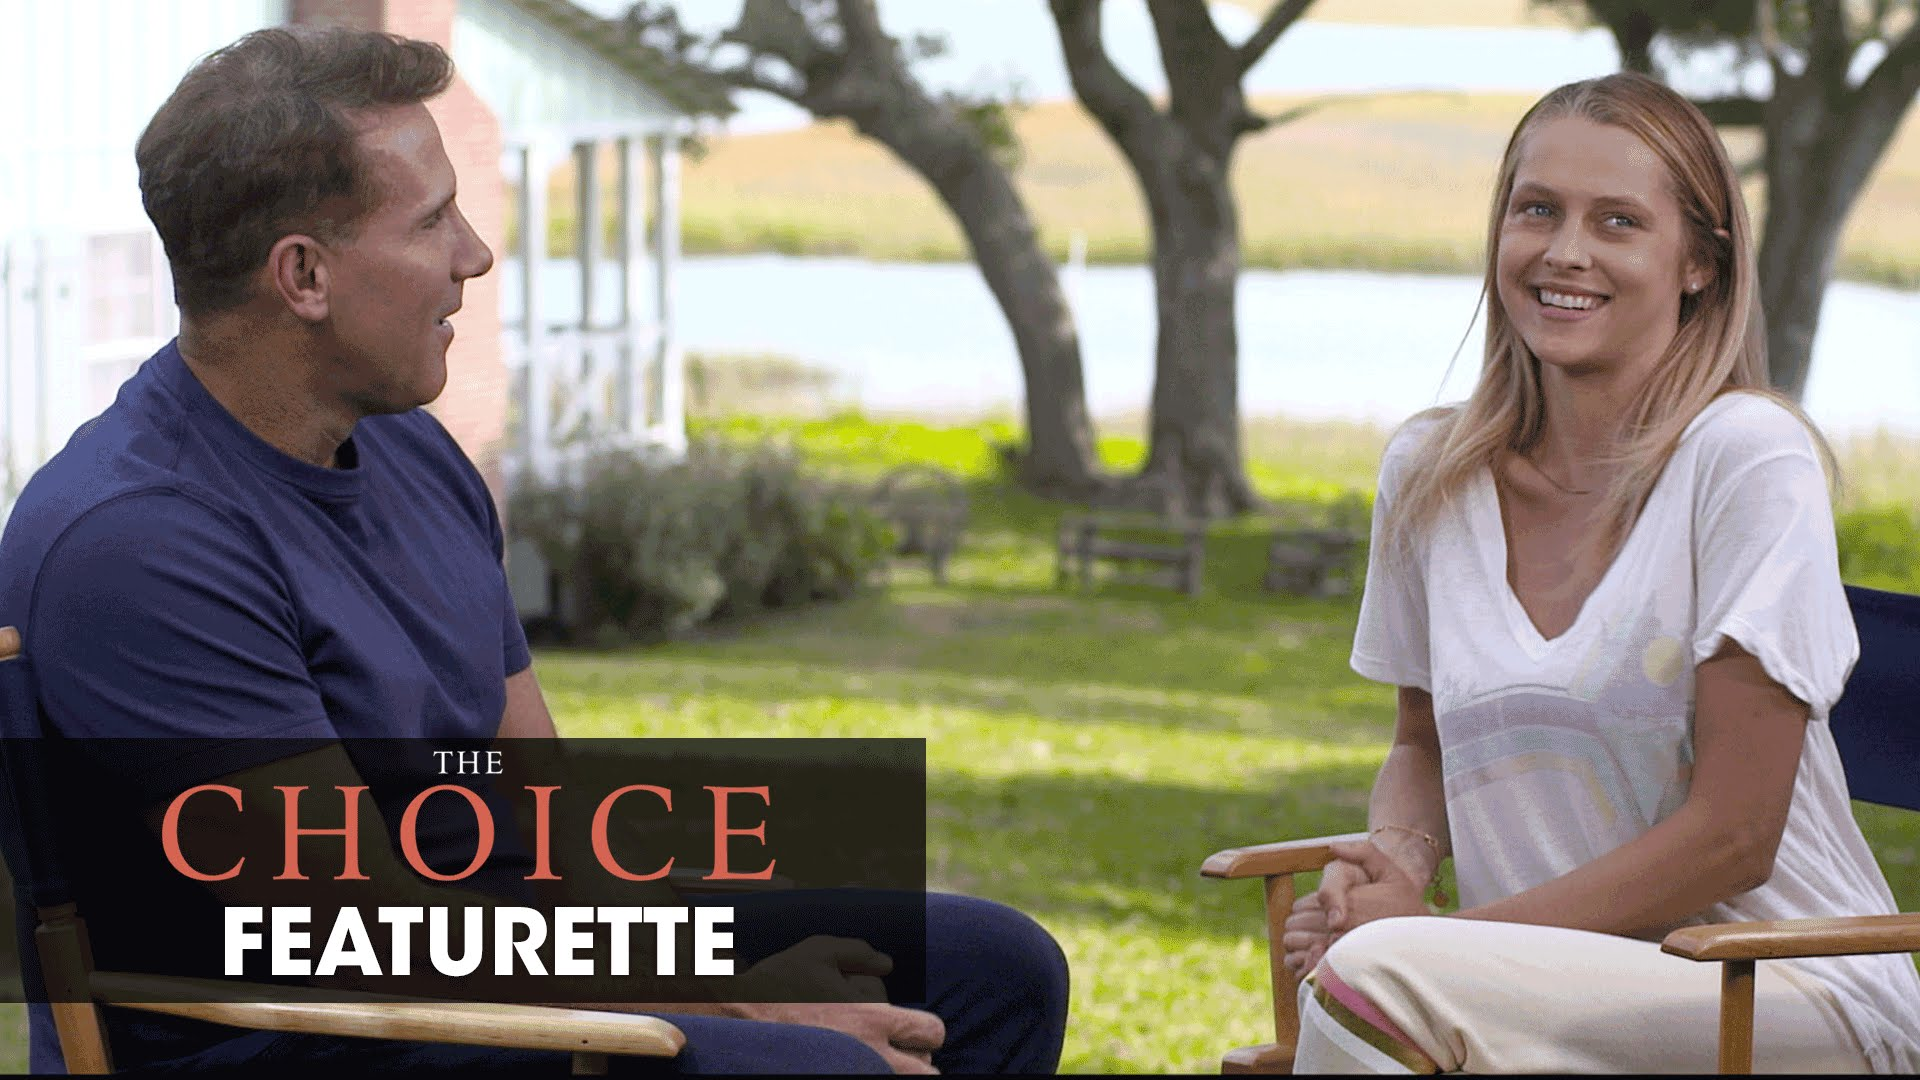 The Choice (2016 Movie – Nicholas Sparks) – Official Behind The Scenes Featurette